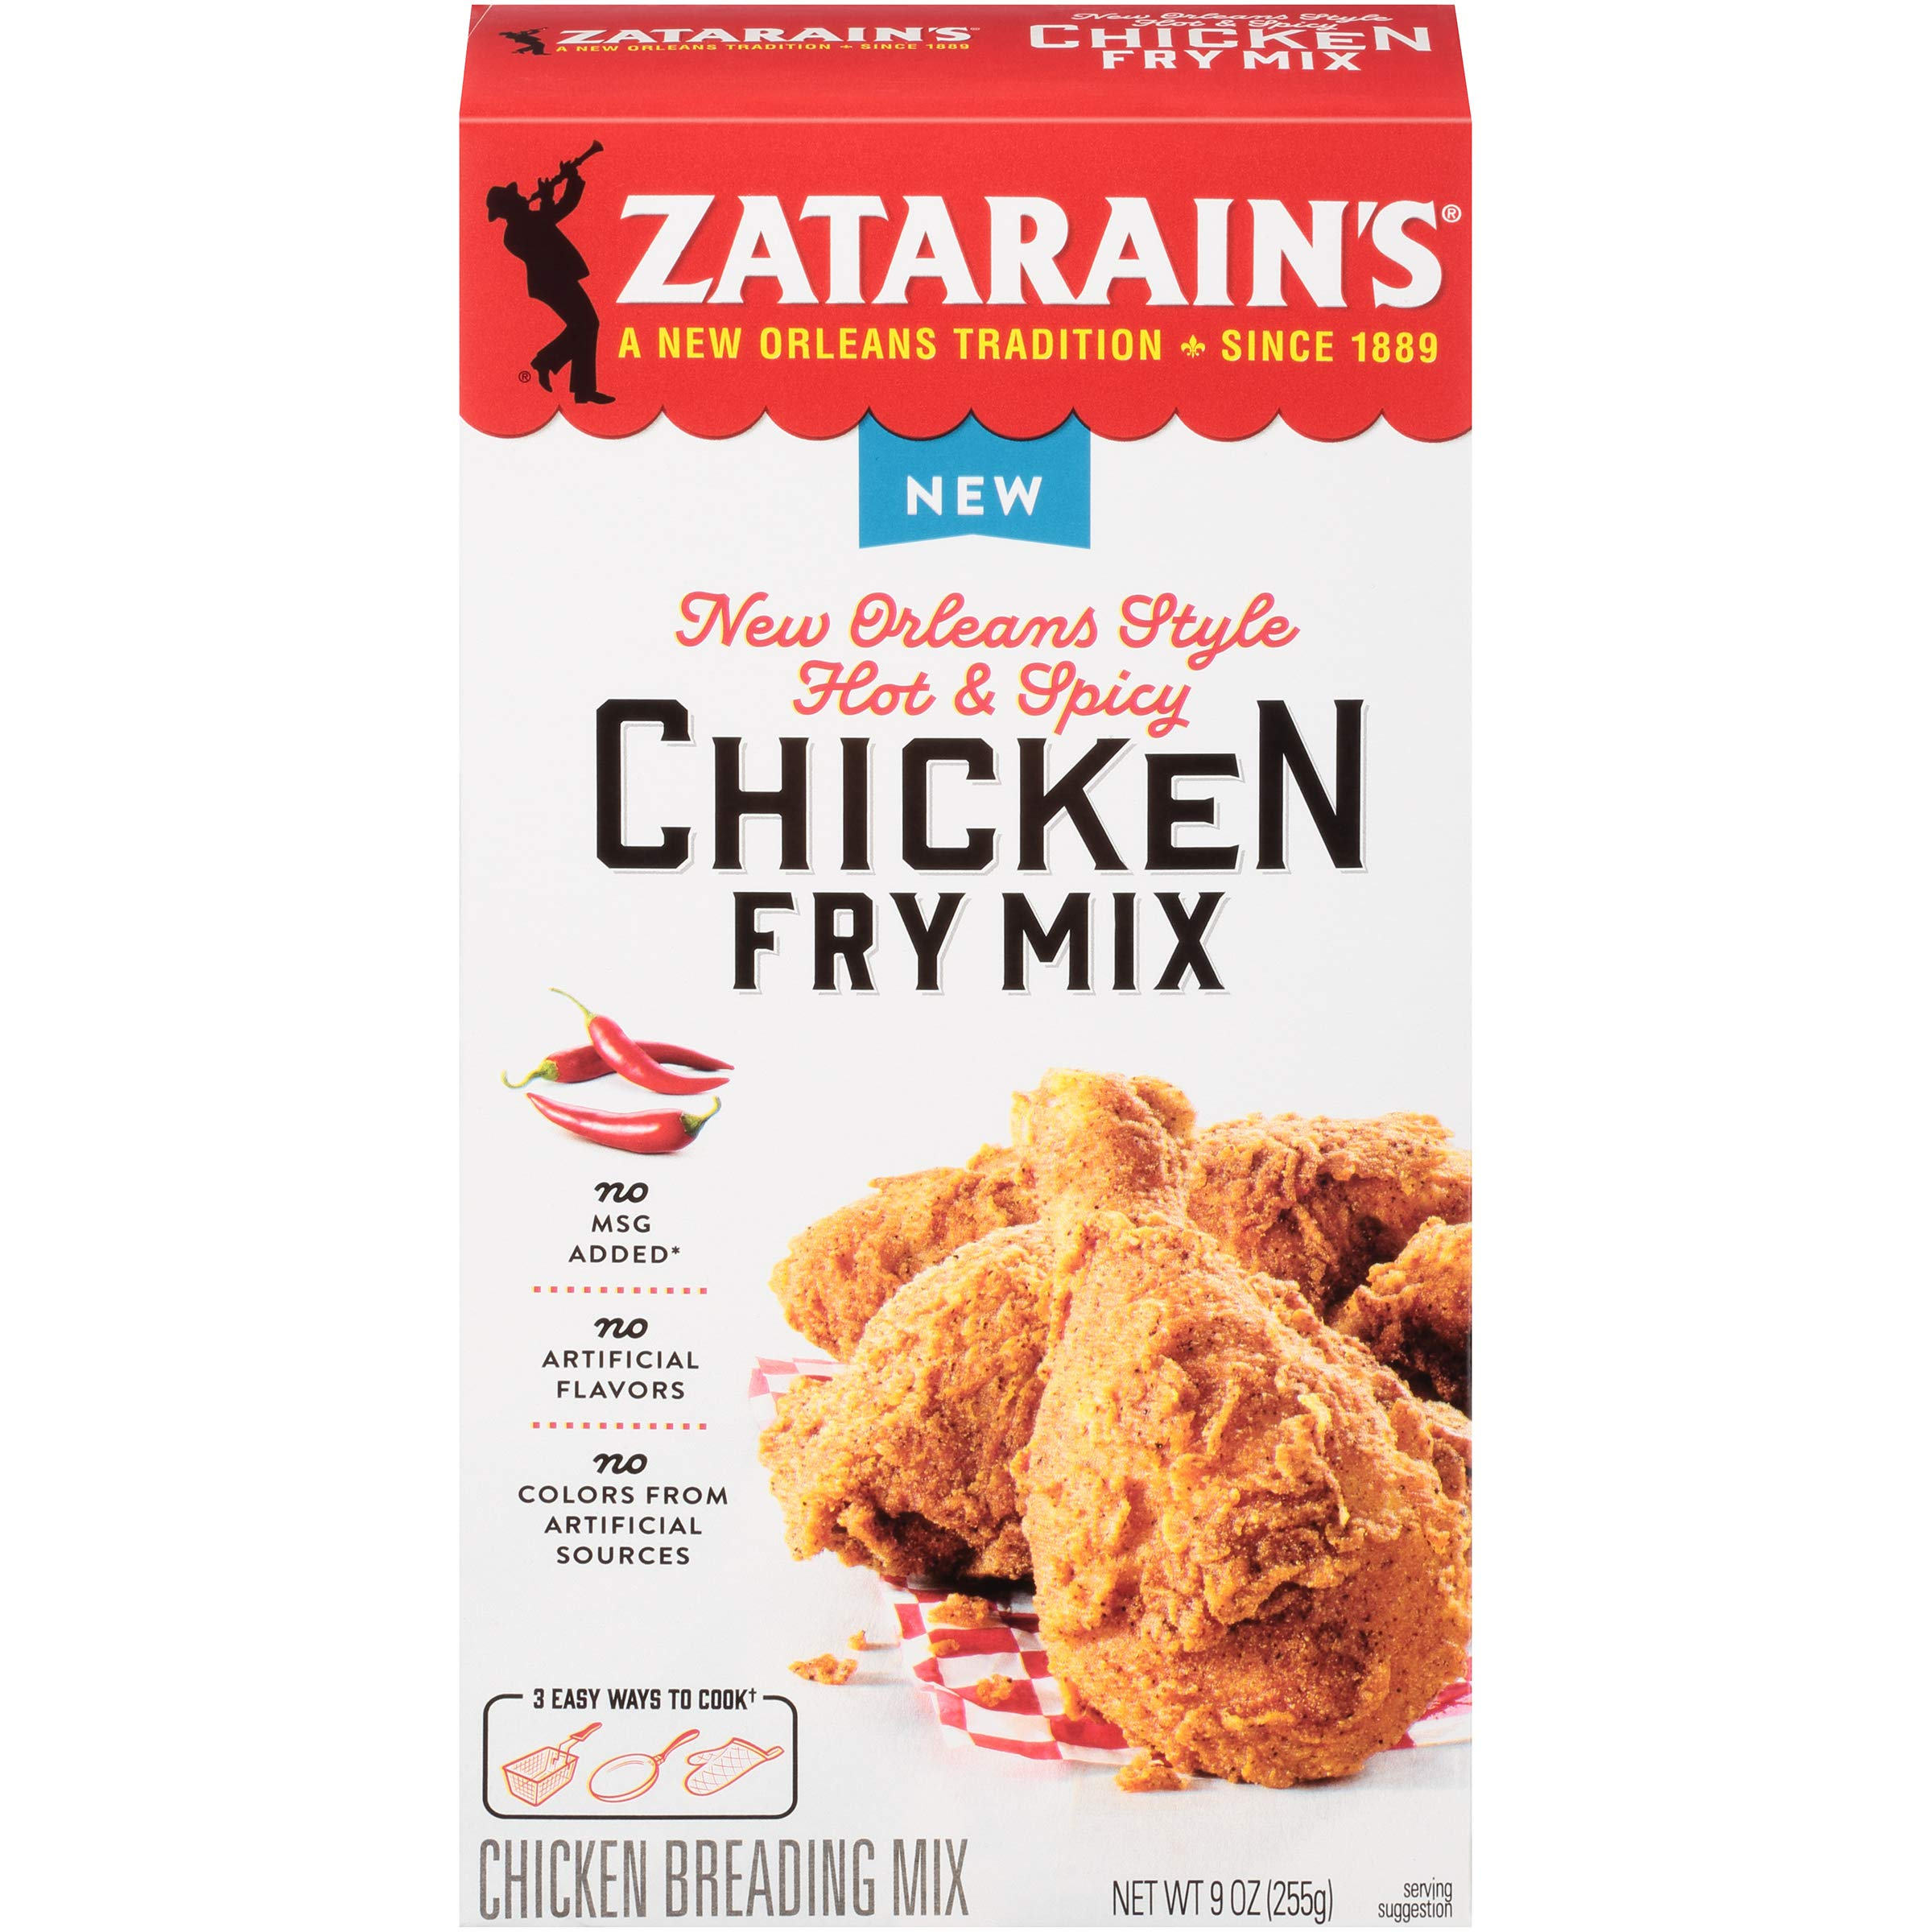 New Orleans Style Hot & Spicy Chicken Fry Mix, 1 Count